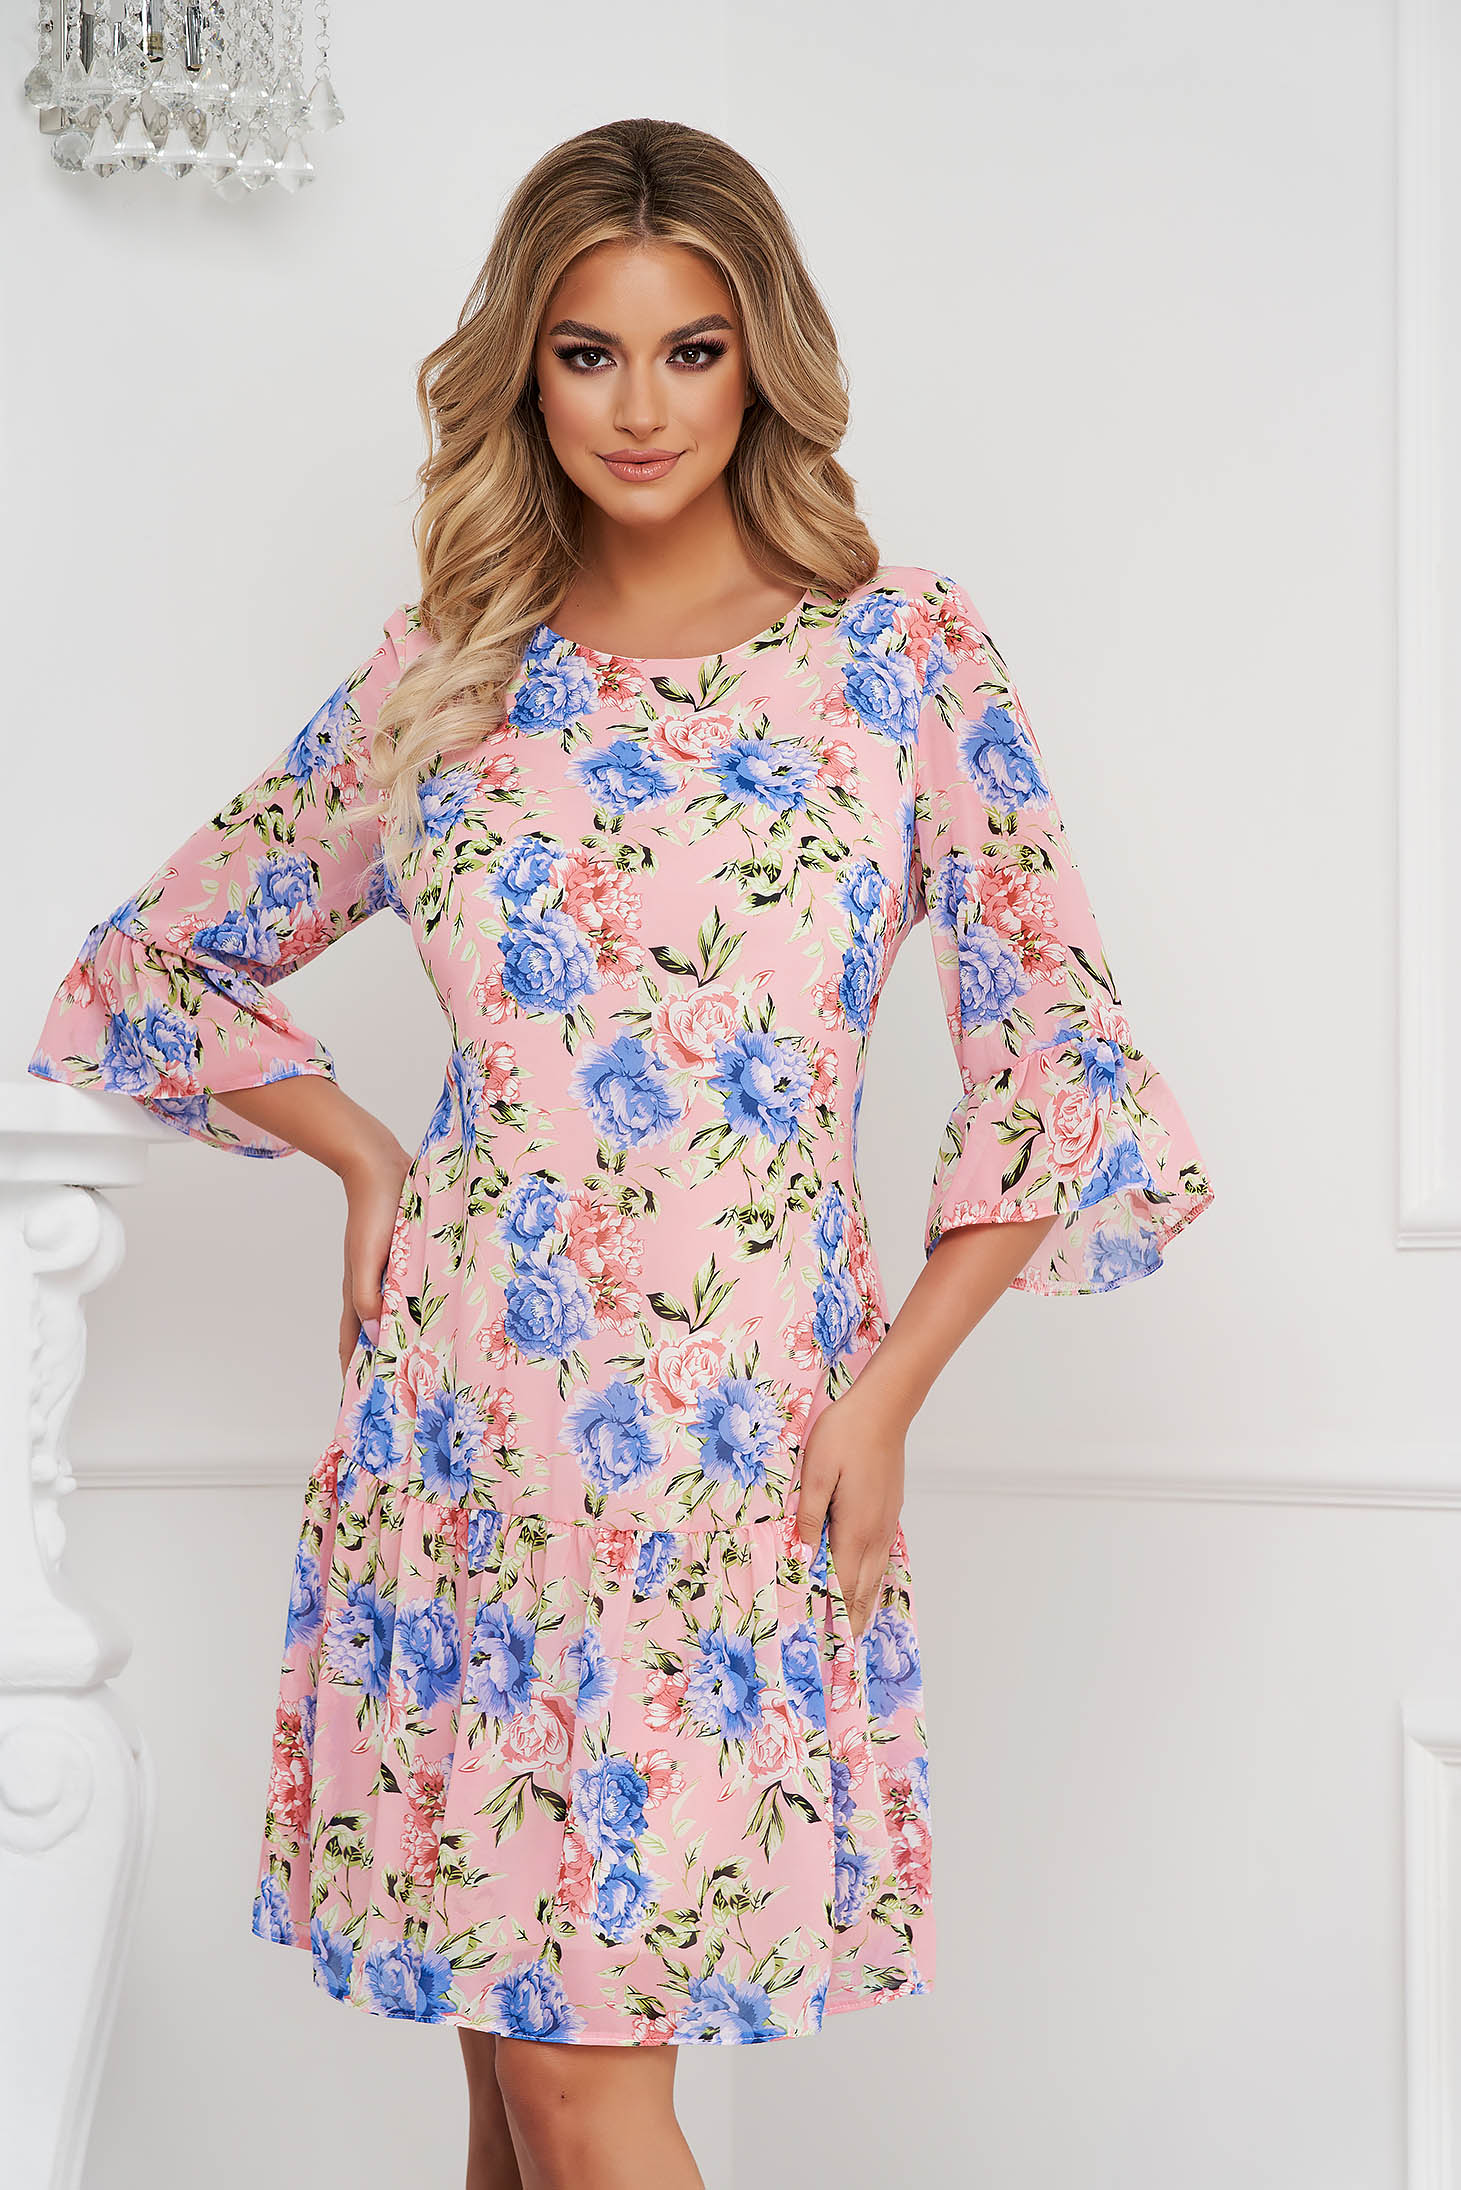 Dress short cut straight airy fabric with ruffles at the buttom of the dress